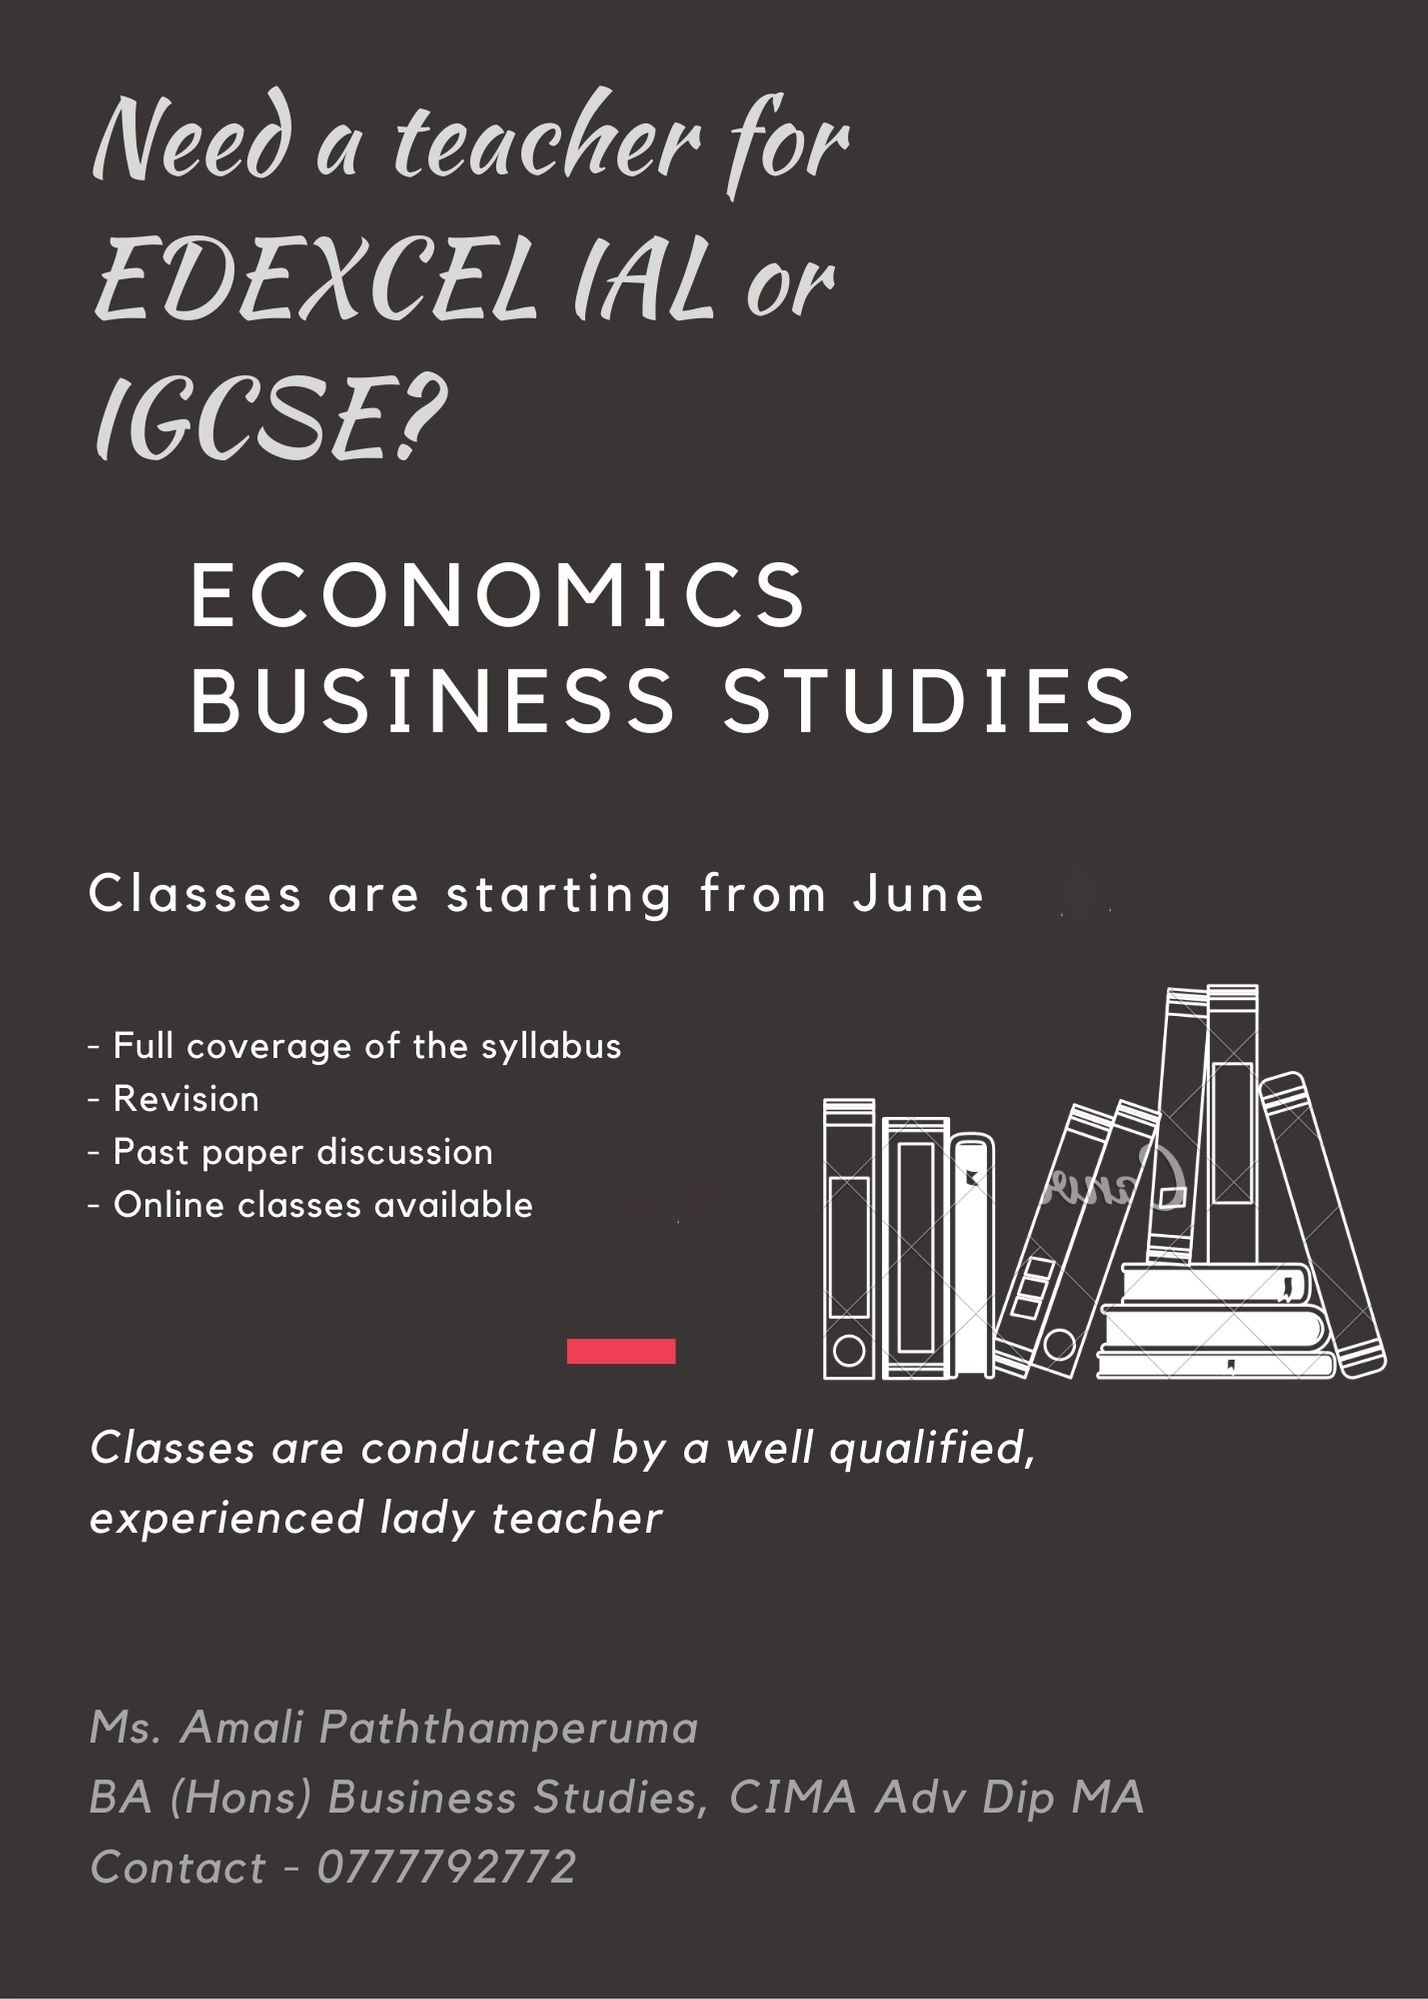 Economics and Business Studies for Edexcel IAL and IGCSE